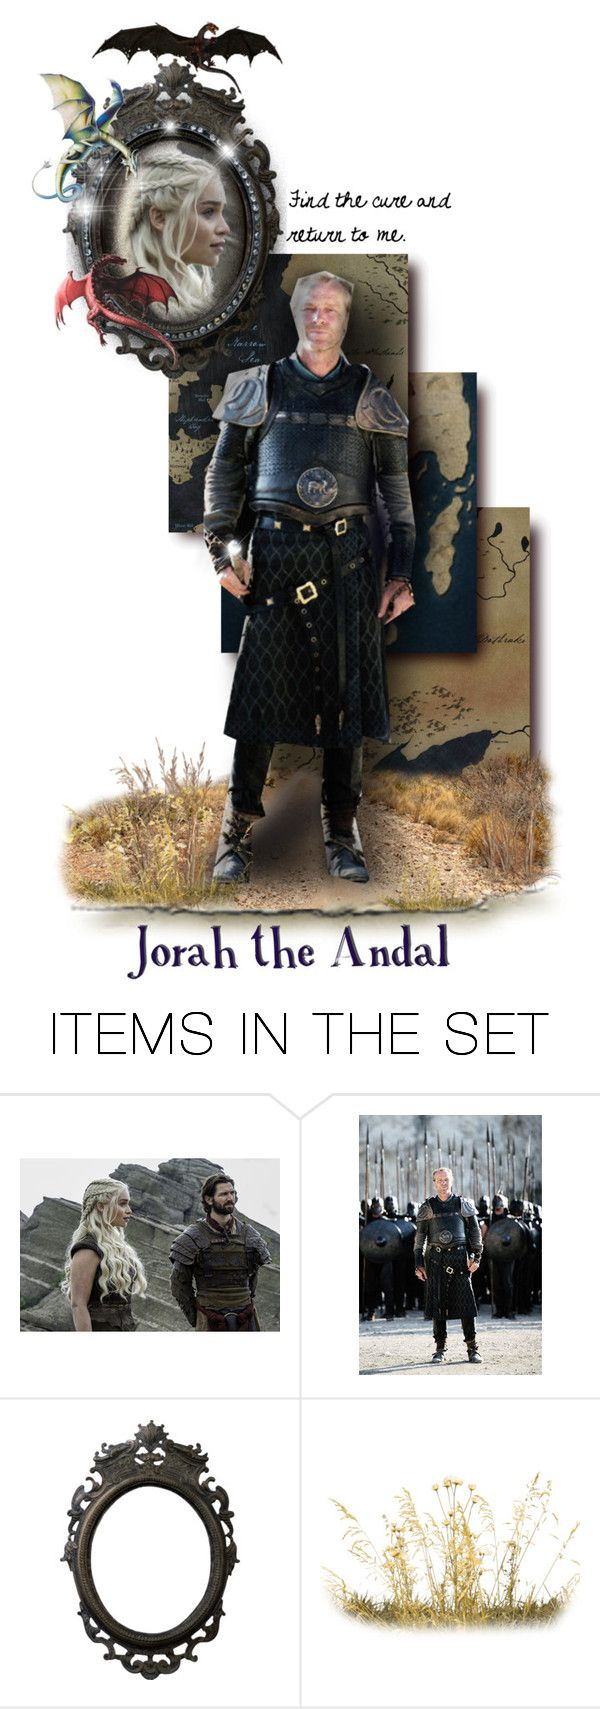 25 best ideas about jorah game of thrones on pinterest game of -  Jorah The Andal By Annette Heathen Liked On Polyvore Featuring Art